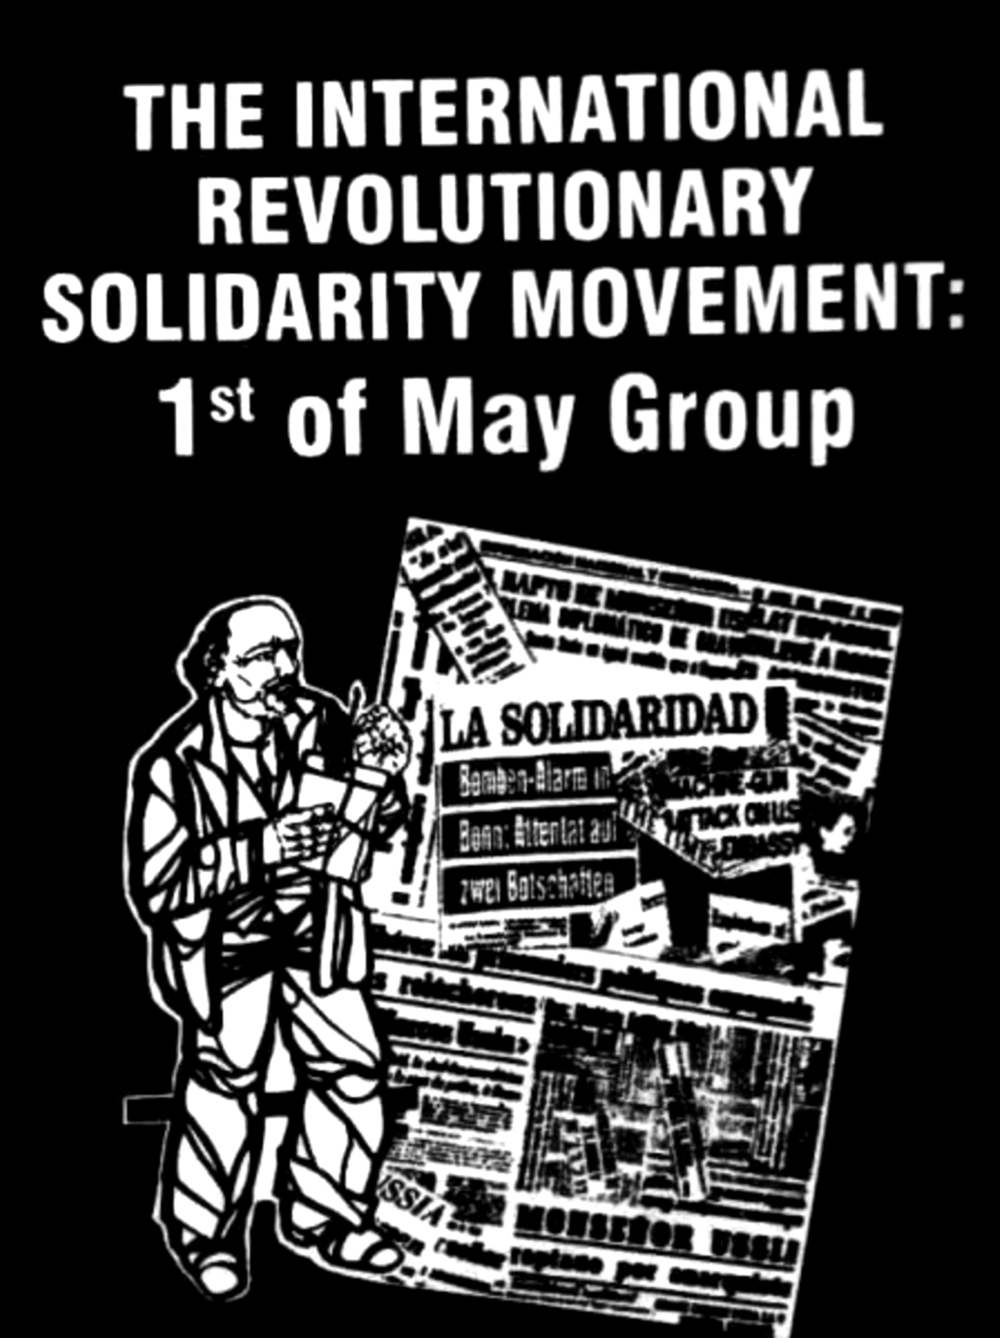 a-m-albert-meltzer-ed-the-international-revolution-1.png